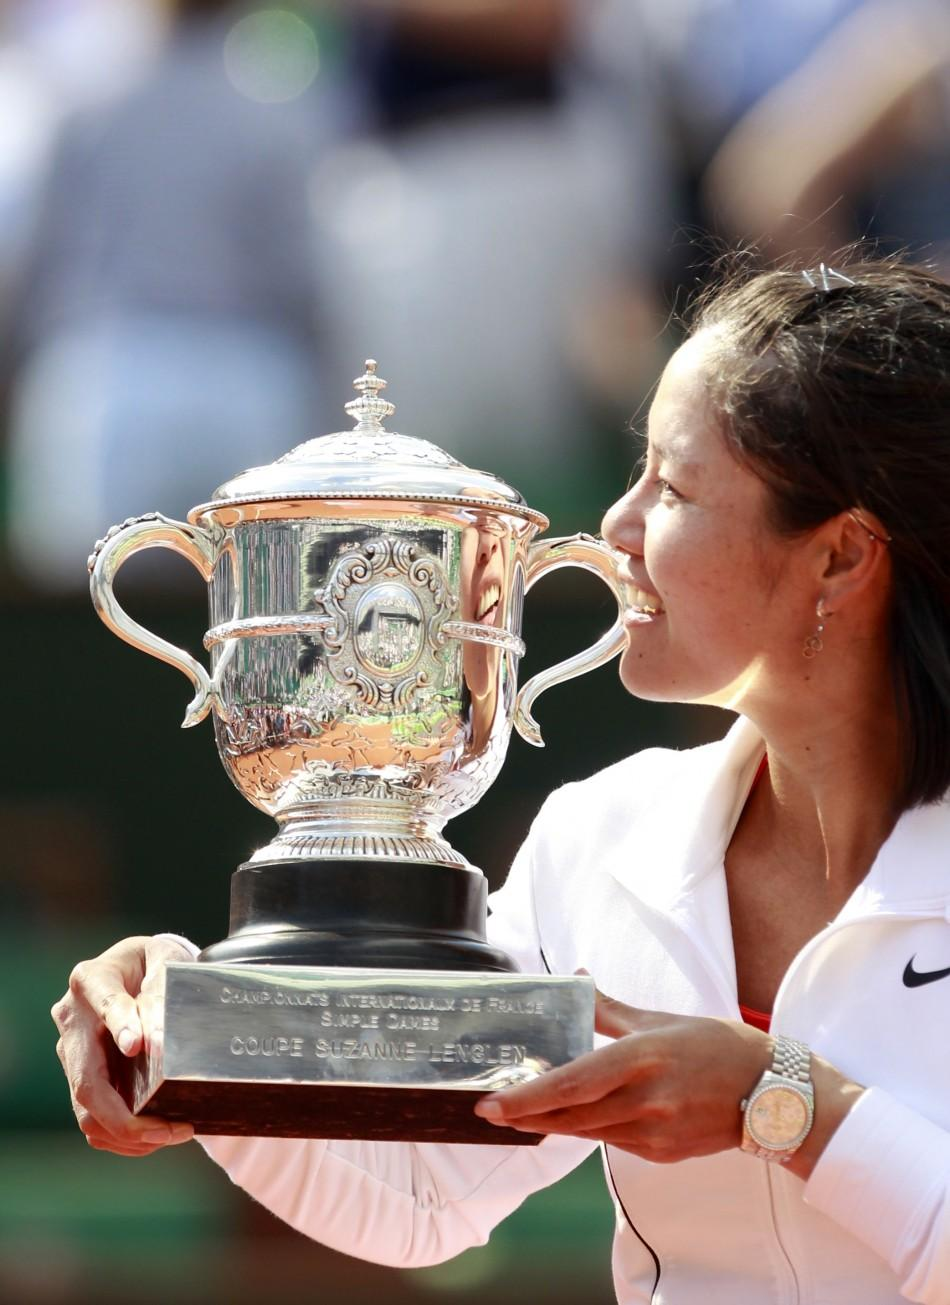 Li Na of China poses with the trophy after winning her women's final against Francesca Schiavone of Italy at the French Open tennis tournament at the Roland Garros stadium in Paris.